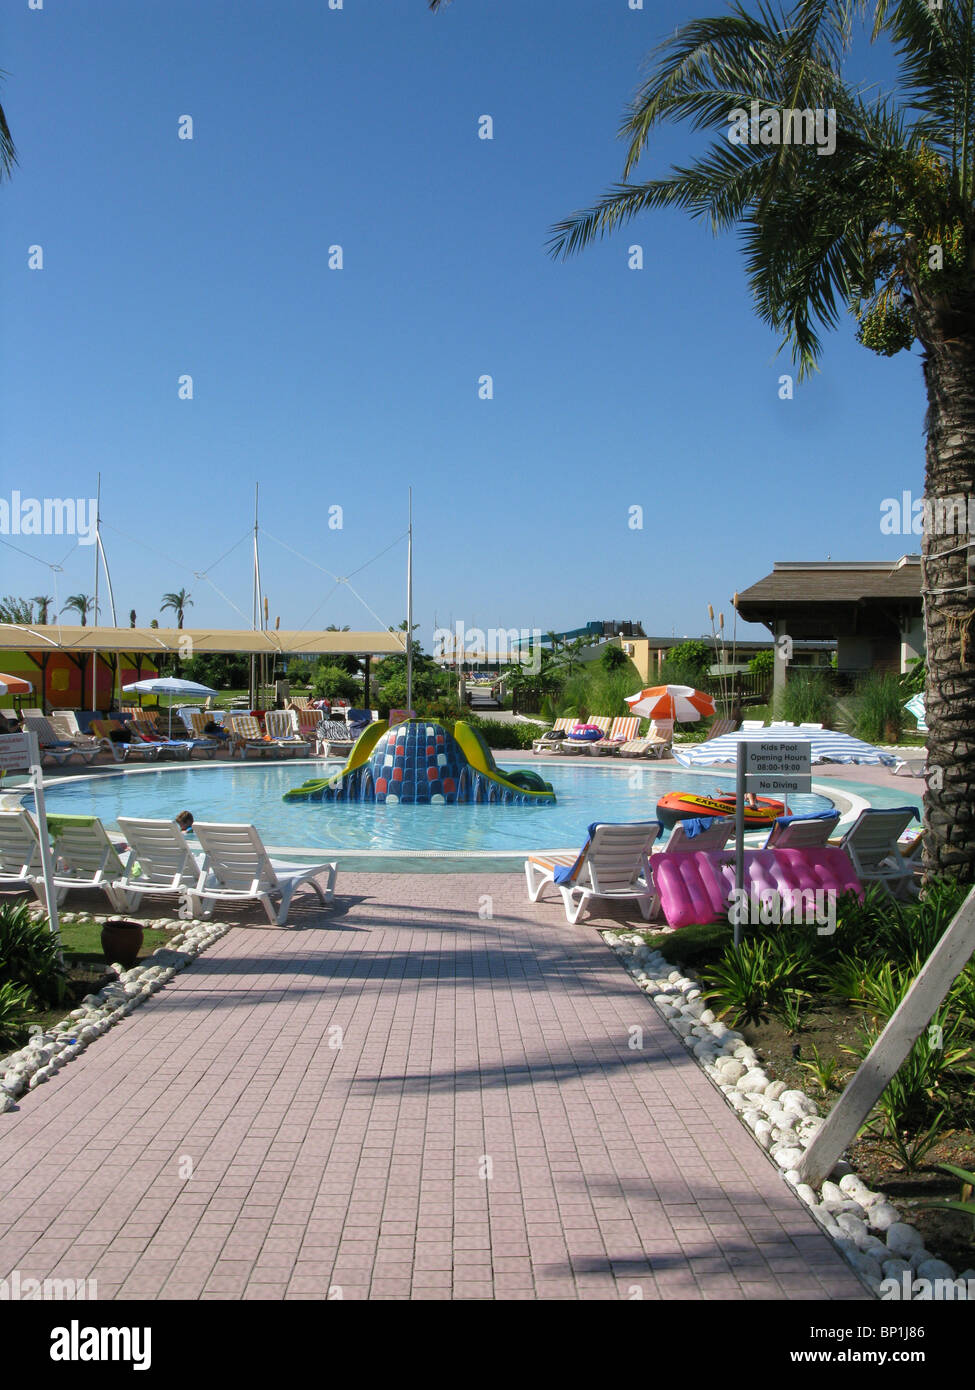 empty kids pool in holiday complex - Stock Image